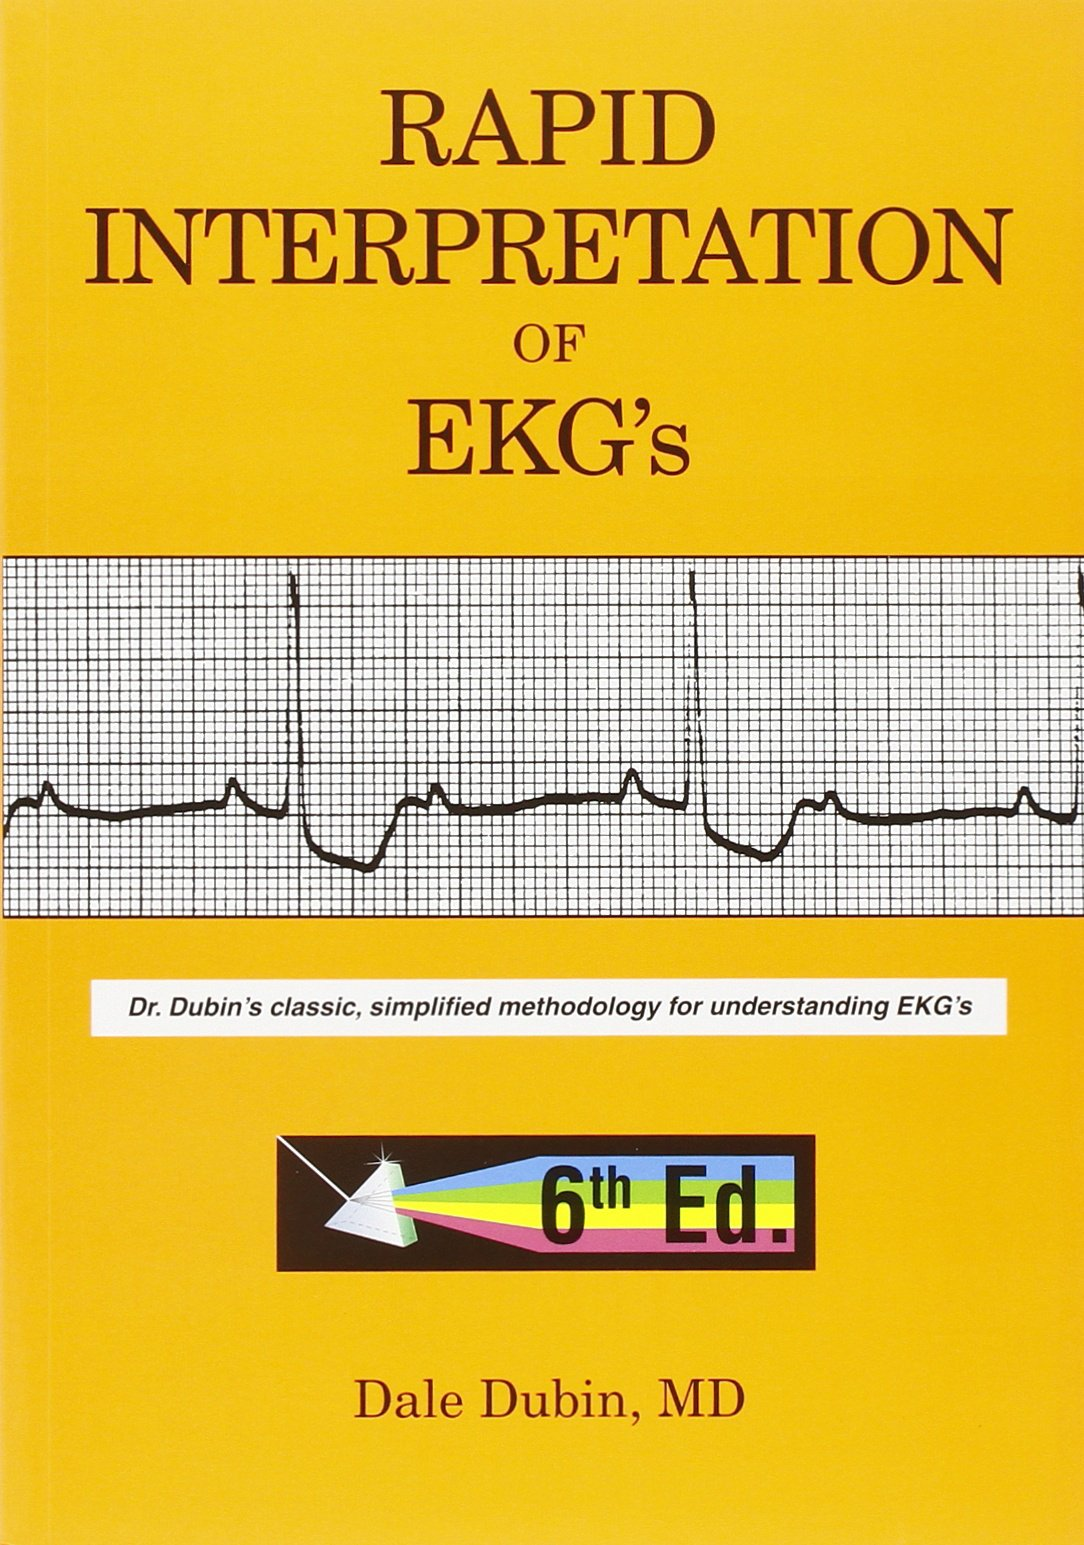 Rapid Interpretation of EKG's, Sixth Edition by Brand: Cover Pub Co